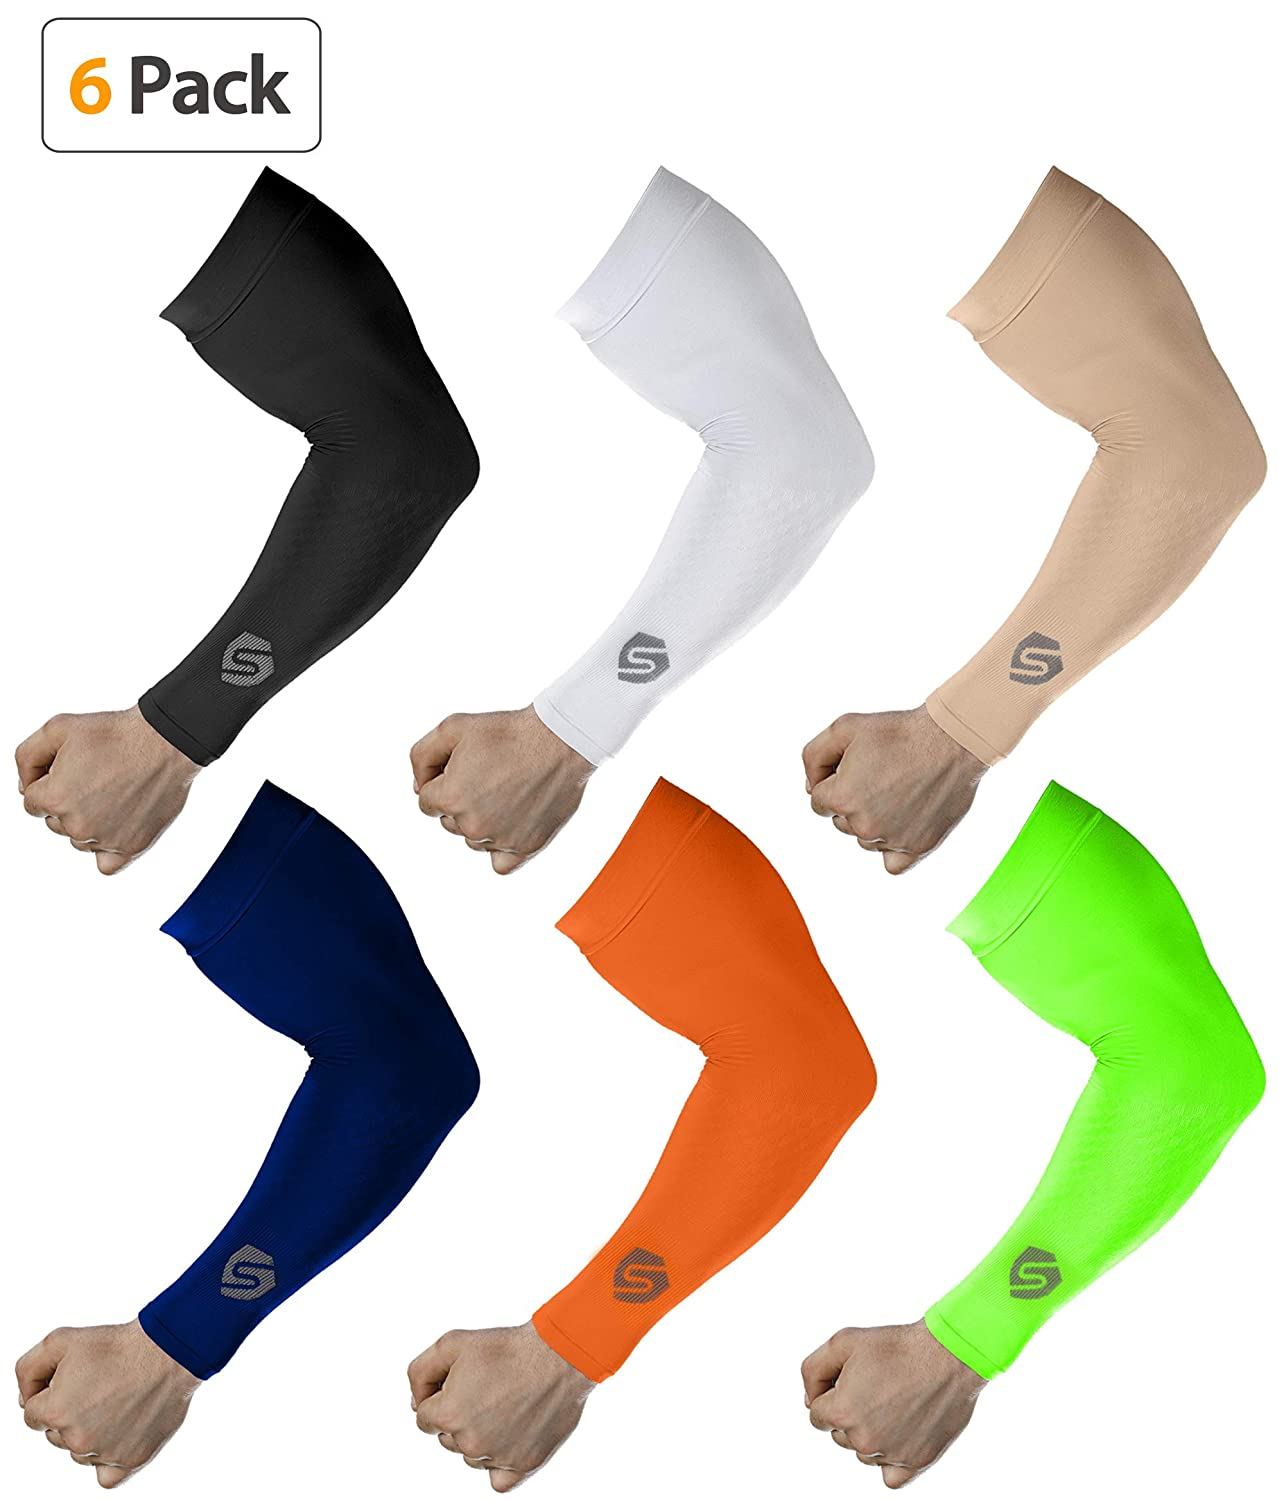 SHINYMOD Cooling Sun Sleeves 2018 Newest Upgraded Version 1 Pair/ 3 Pairs UV Protection Sunblock Arm Tattoo Cover Sleeves Men Women Cycling Driving Golf Running